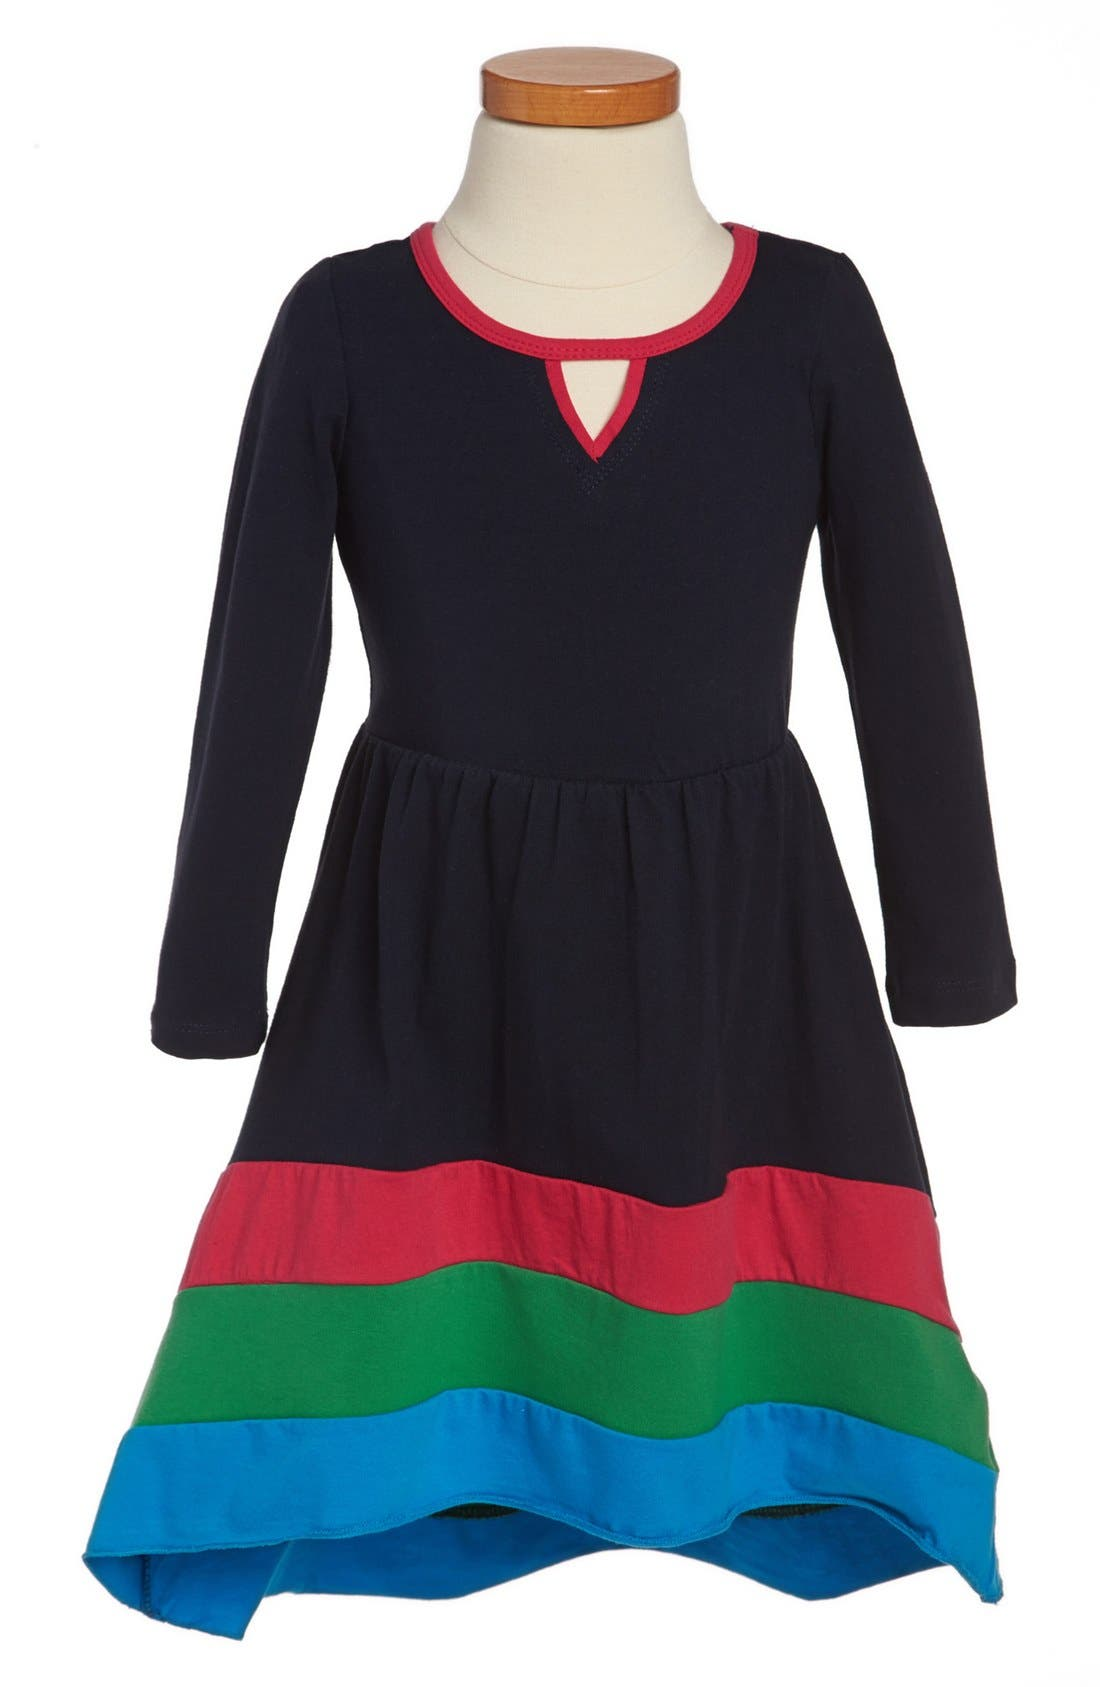 Alternate Image 1 Selected - Ella and Lulu Colorblock Dress (Toddler Girls)